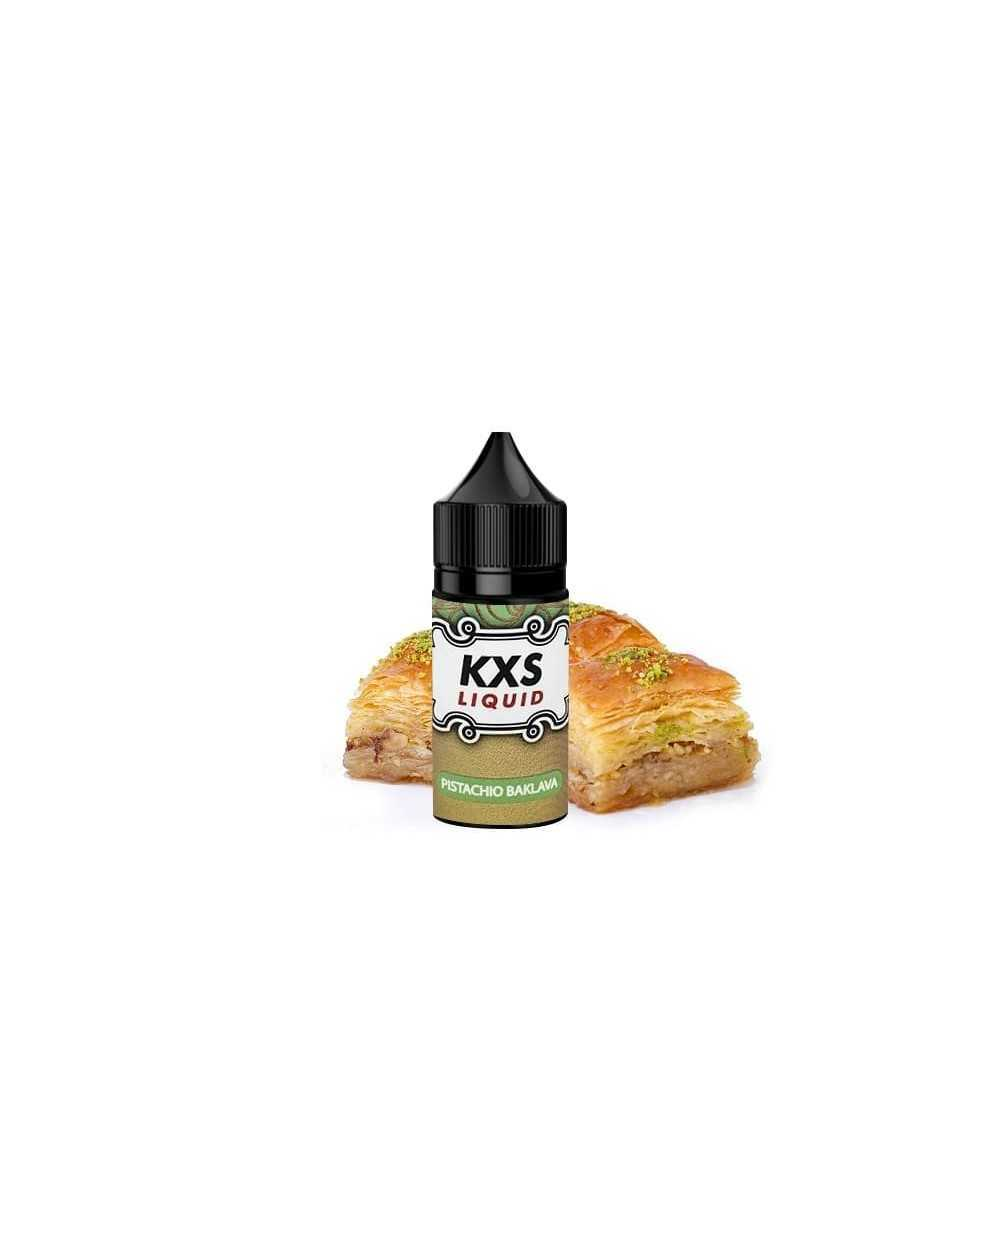 Concentrate Pistachio Baklava 30ml - KXS Liquid-1